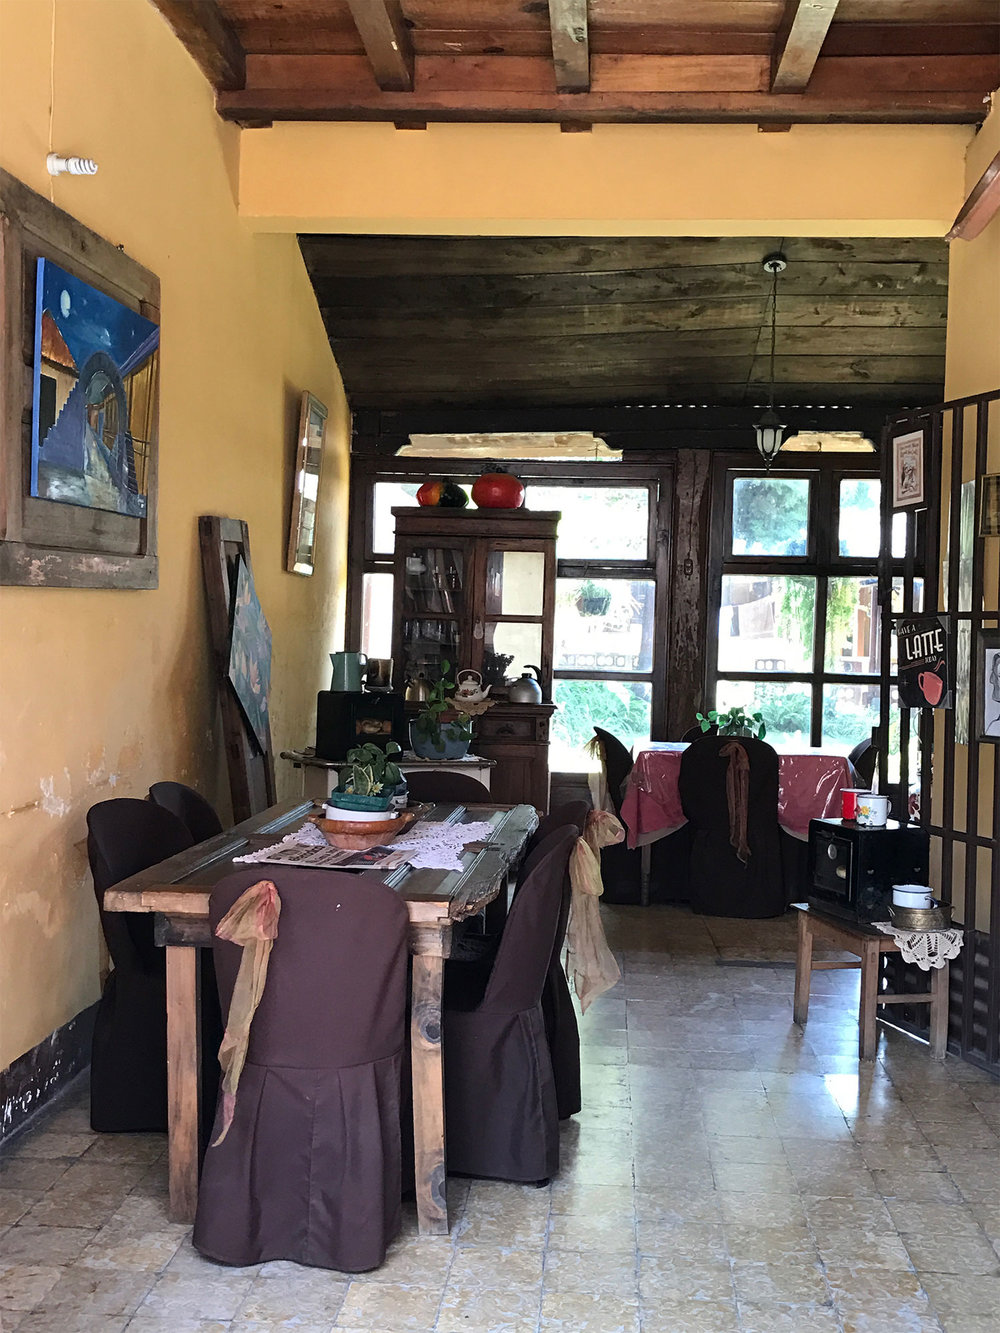 Cafe in Antigua, Guatemala